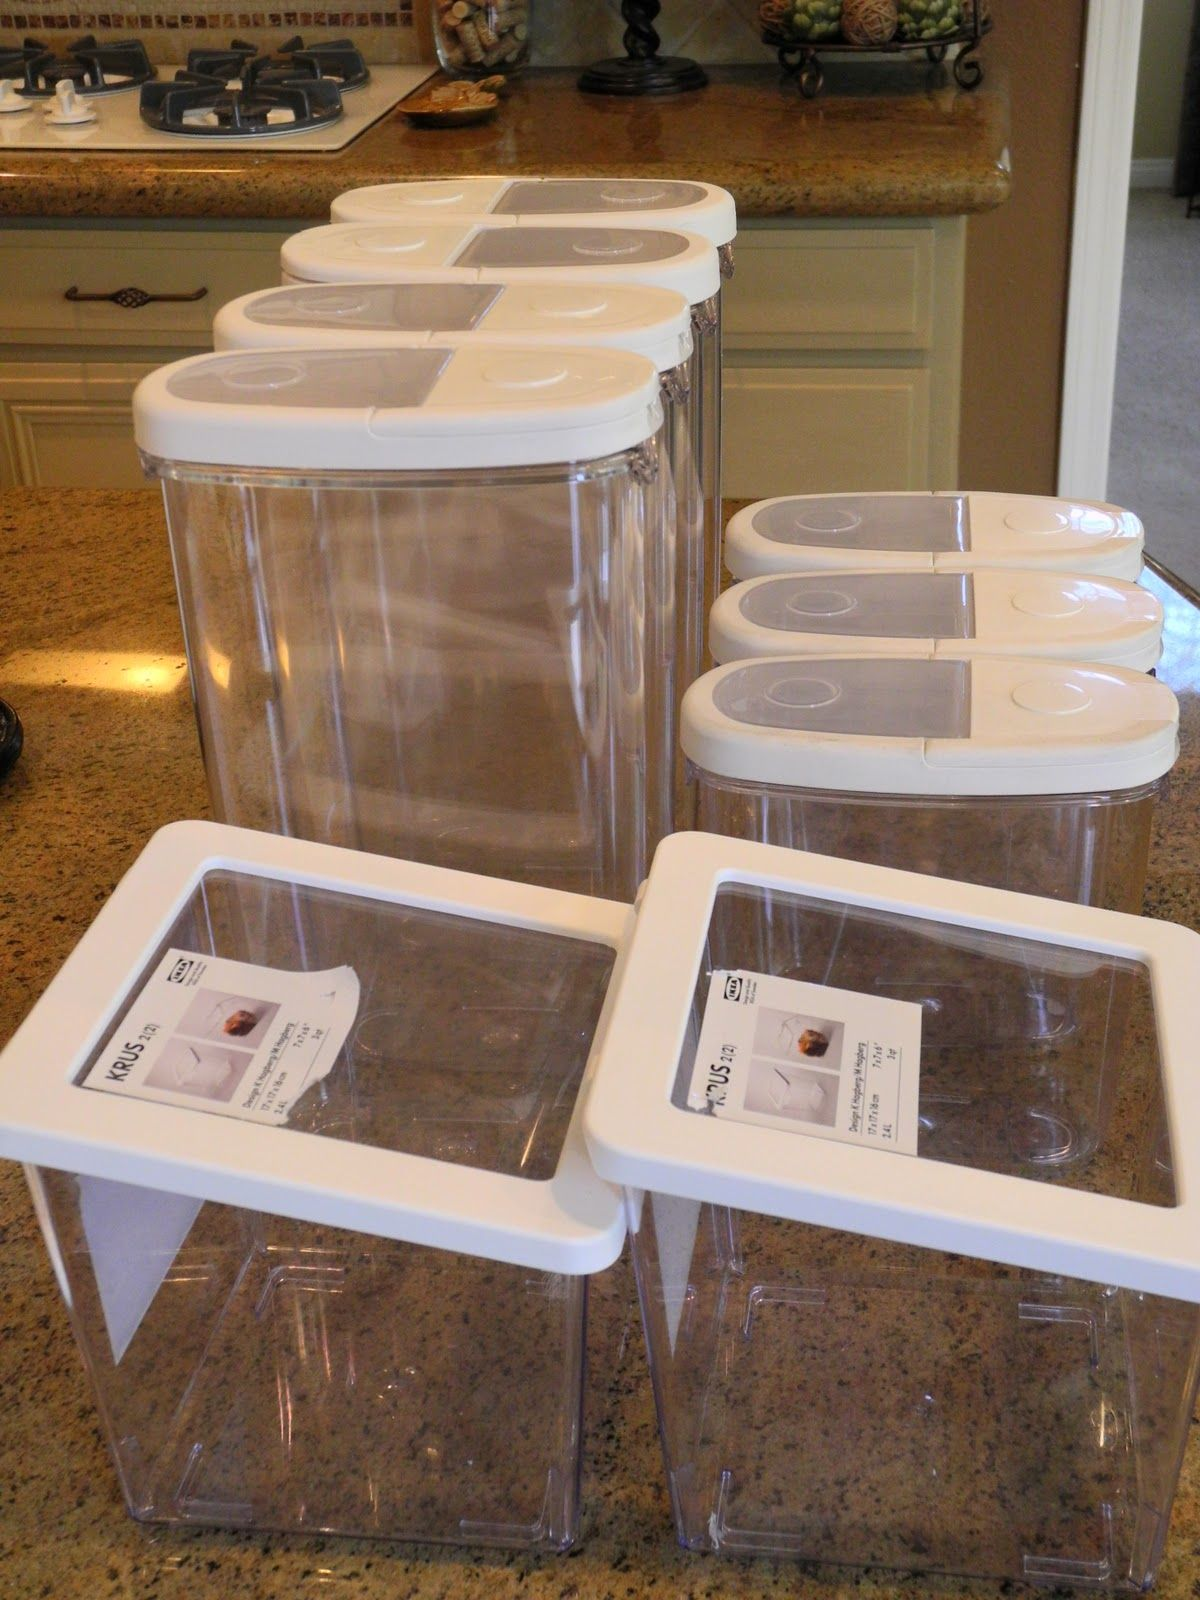 Superbe Bins For Organizing Pantry | BPA Free Ikea Containers For Storage.